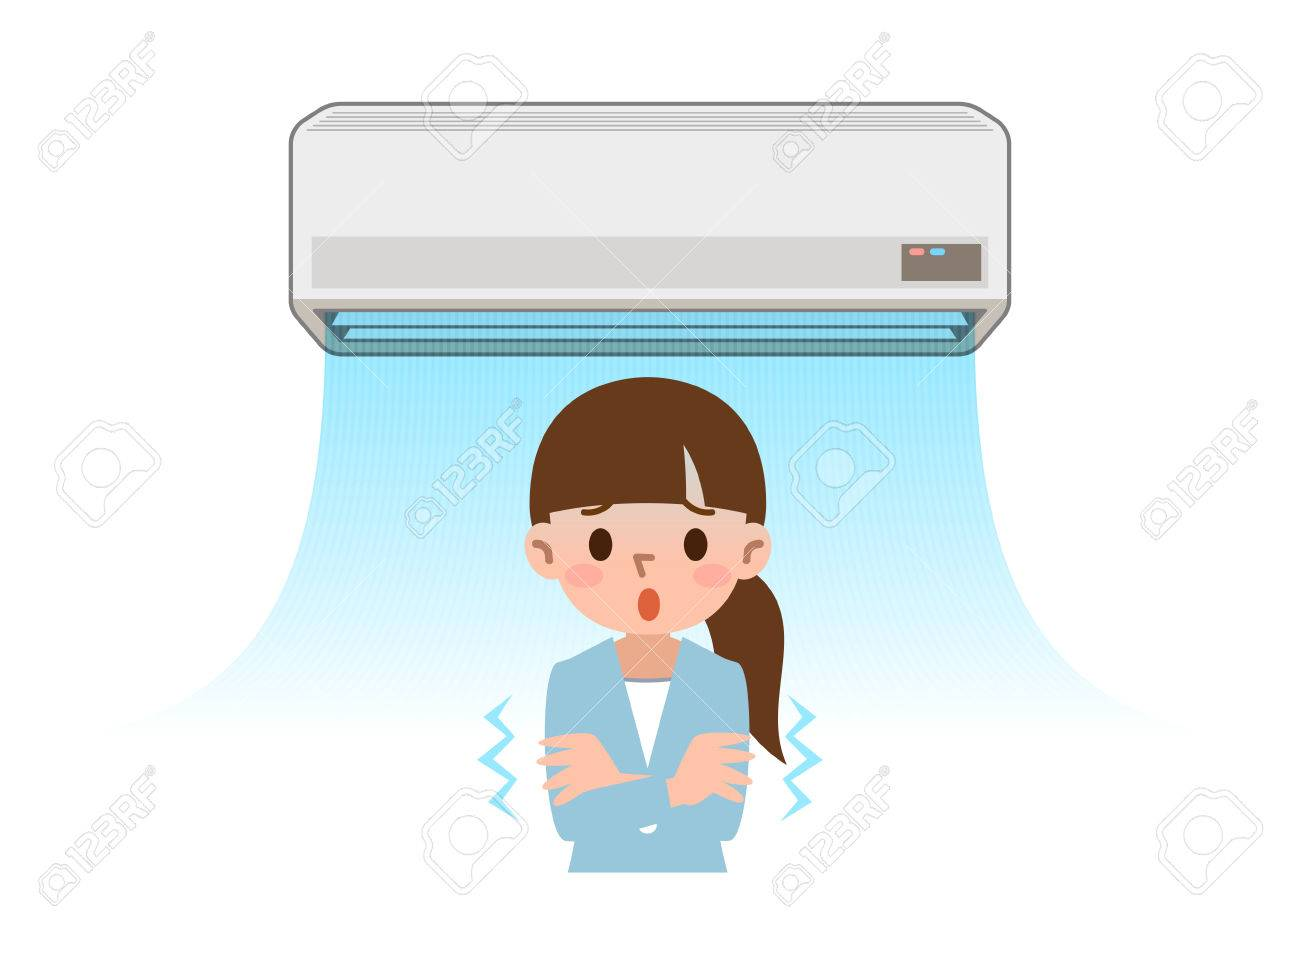 cold air conditioner clipart. cold want women to air conditioning of the wind stock vector - 58418400 conditioner clipart